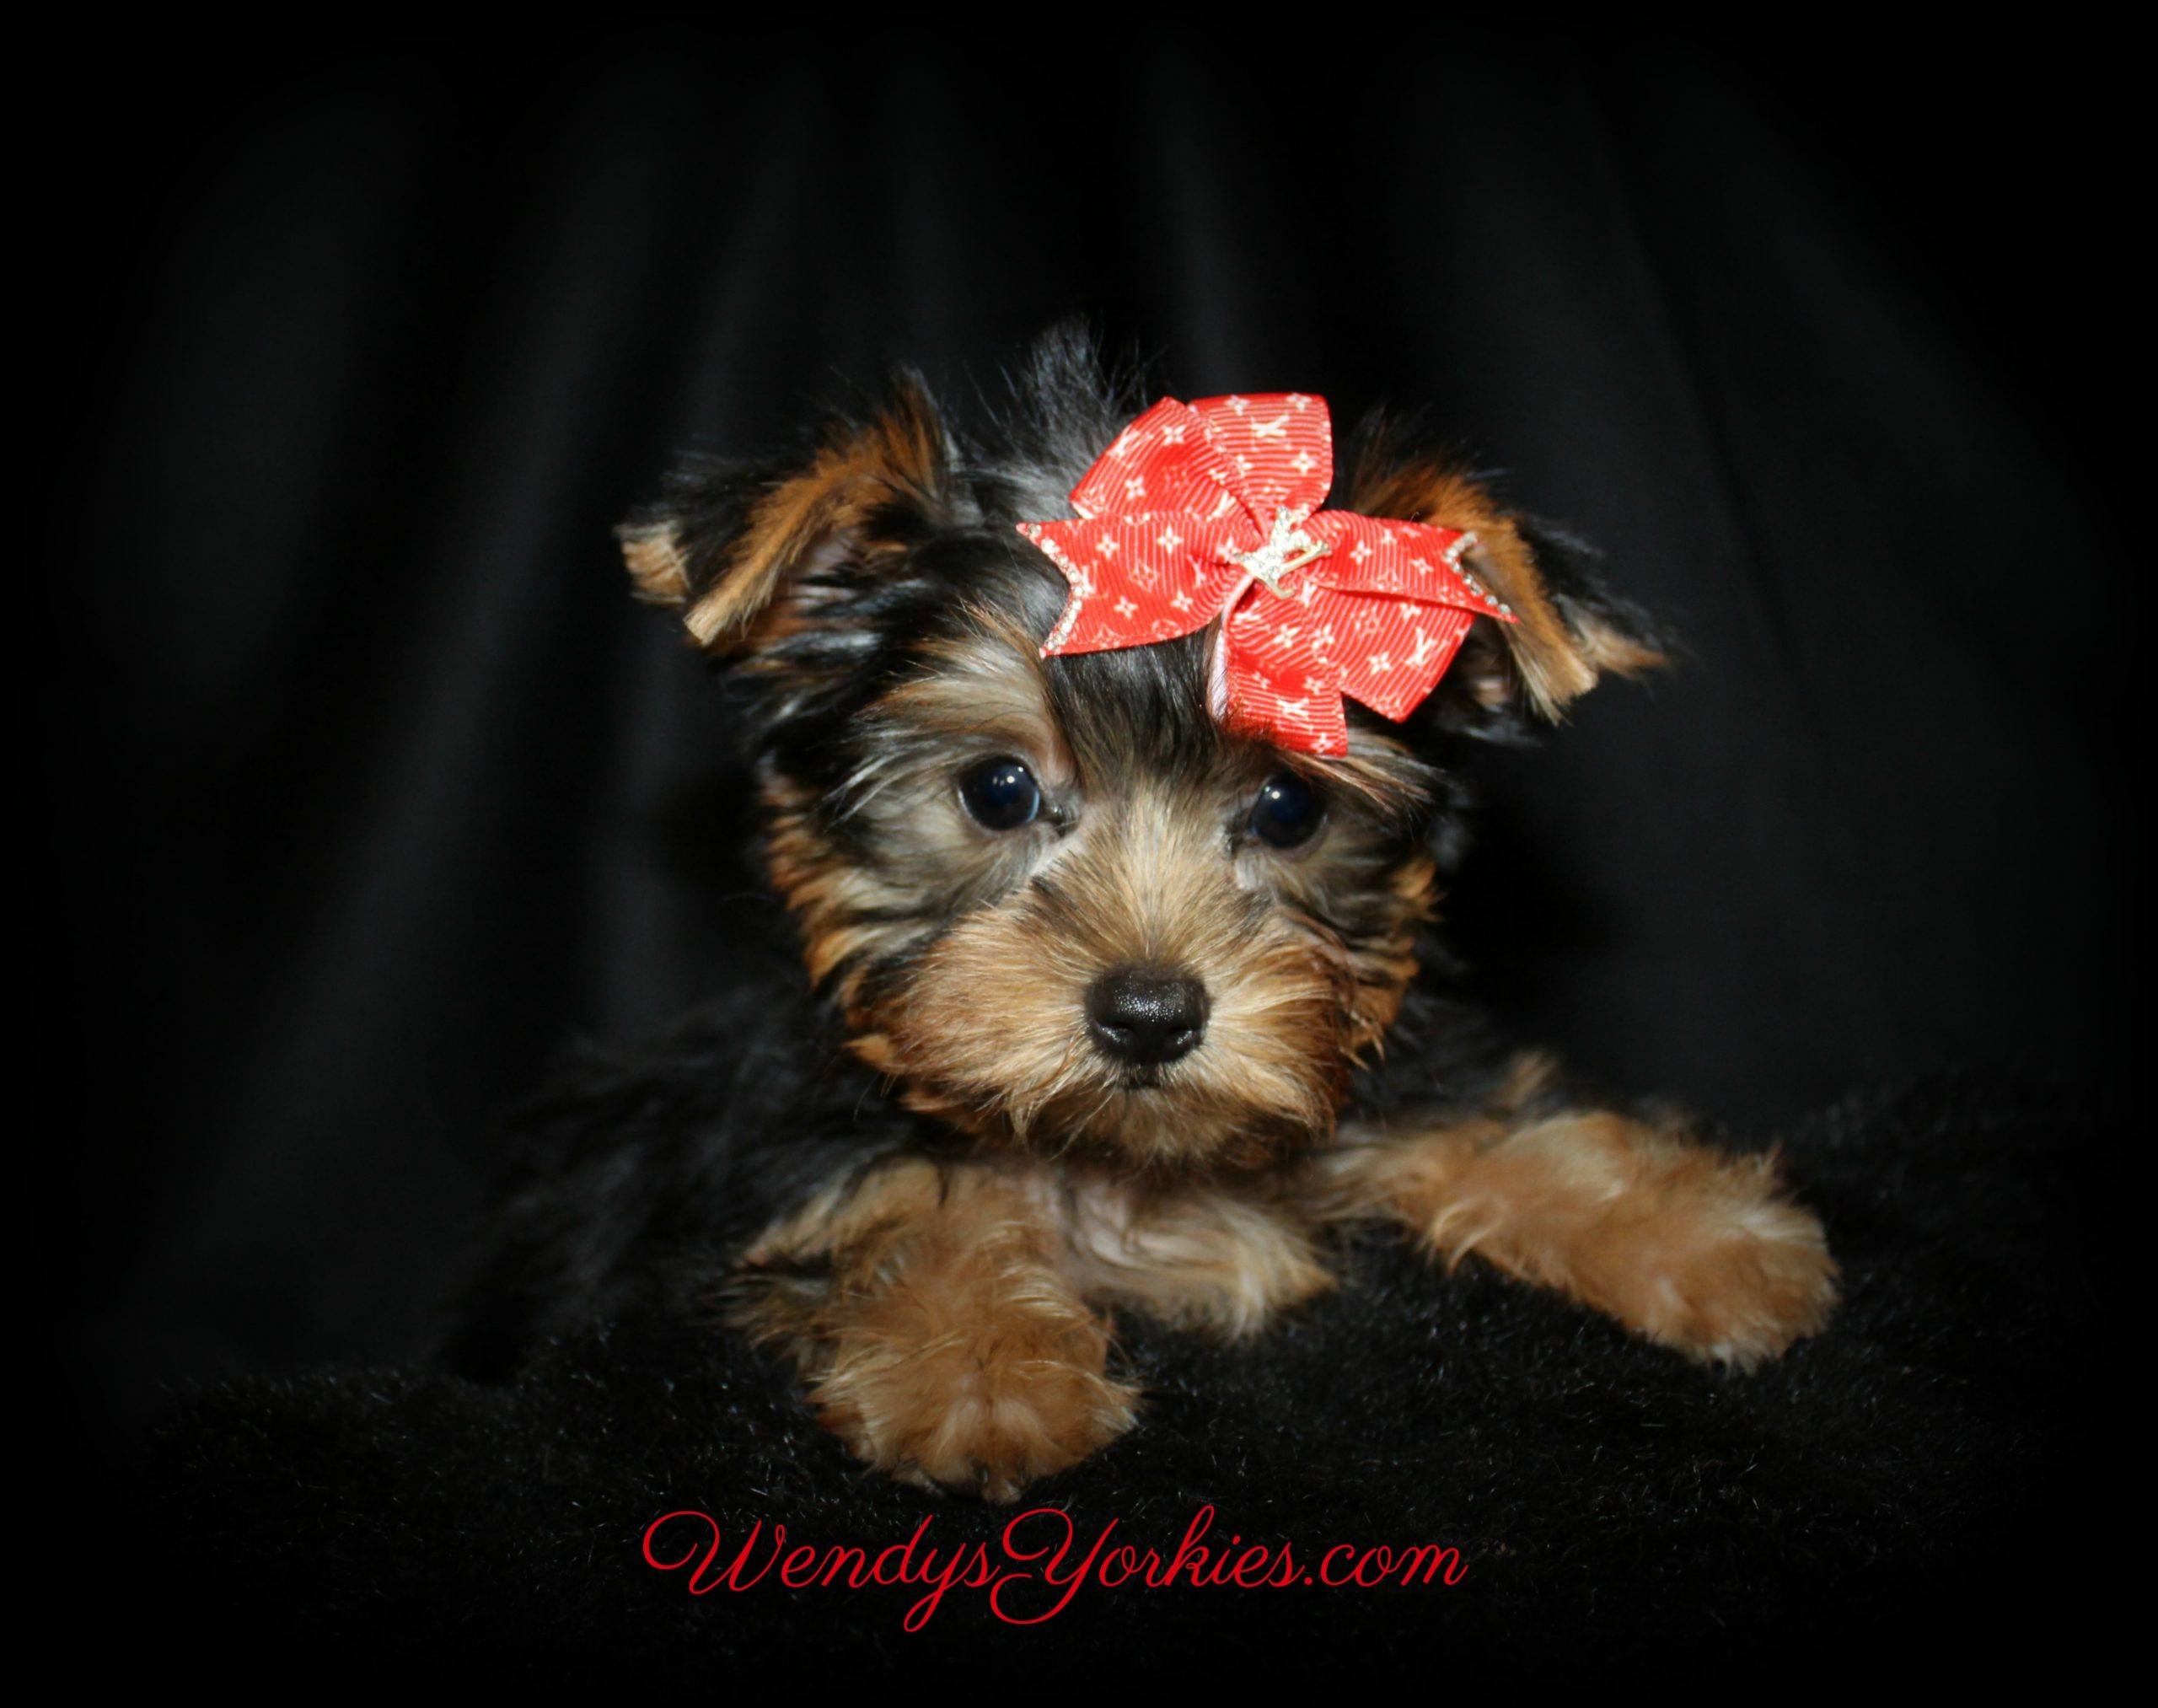 Tiny Male Yorkie puppy for sale, Nola m1, WendysYorkies.com